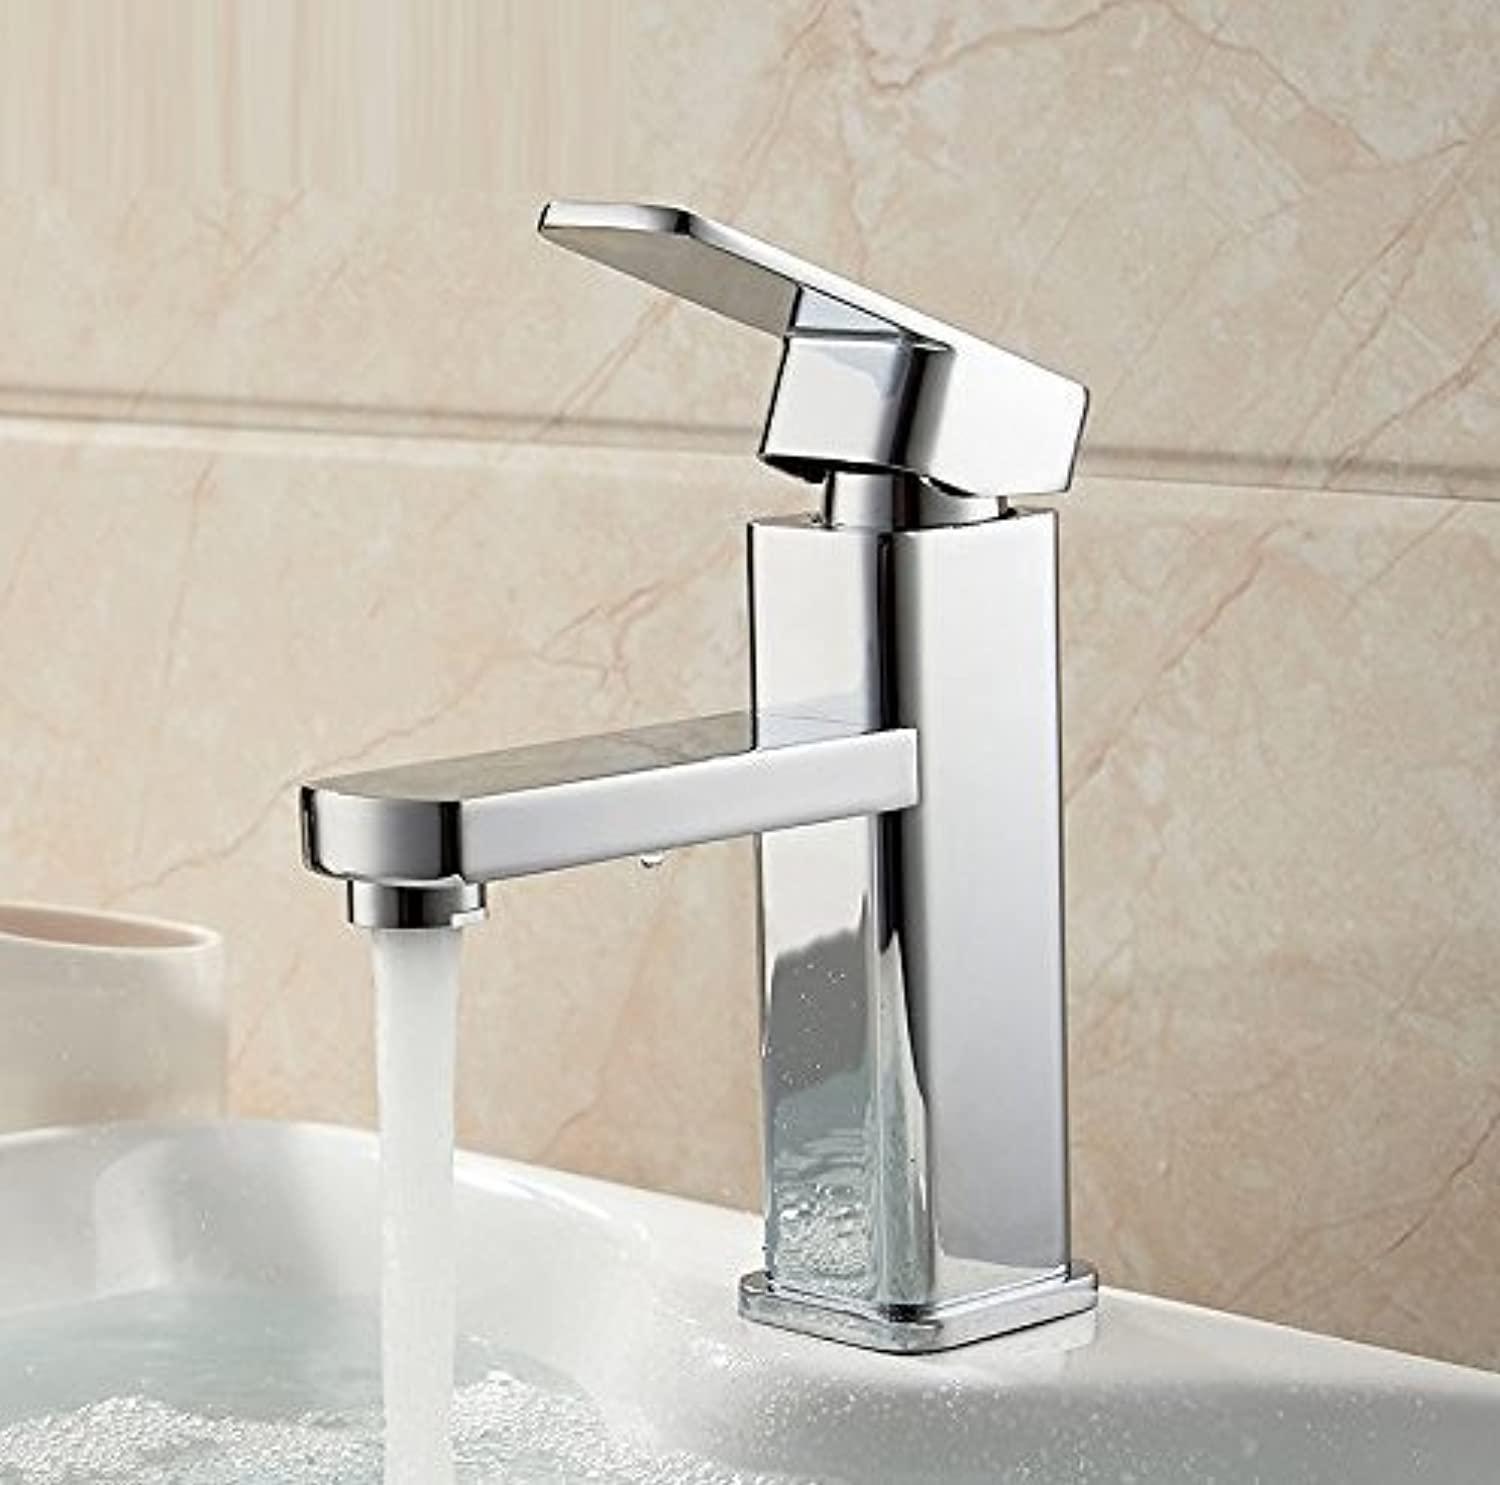 Basin Faucet Tap Mixer Finish Brass Square Pillar Designer Water Chrome Modern Waterfall Faucets